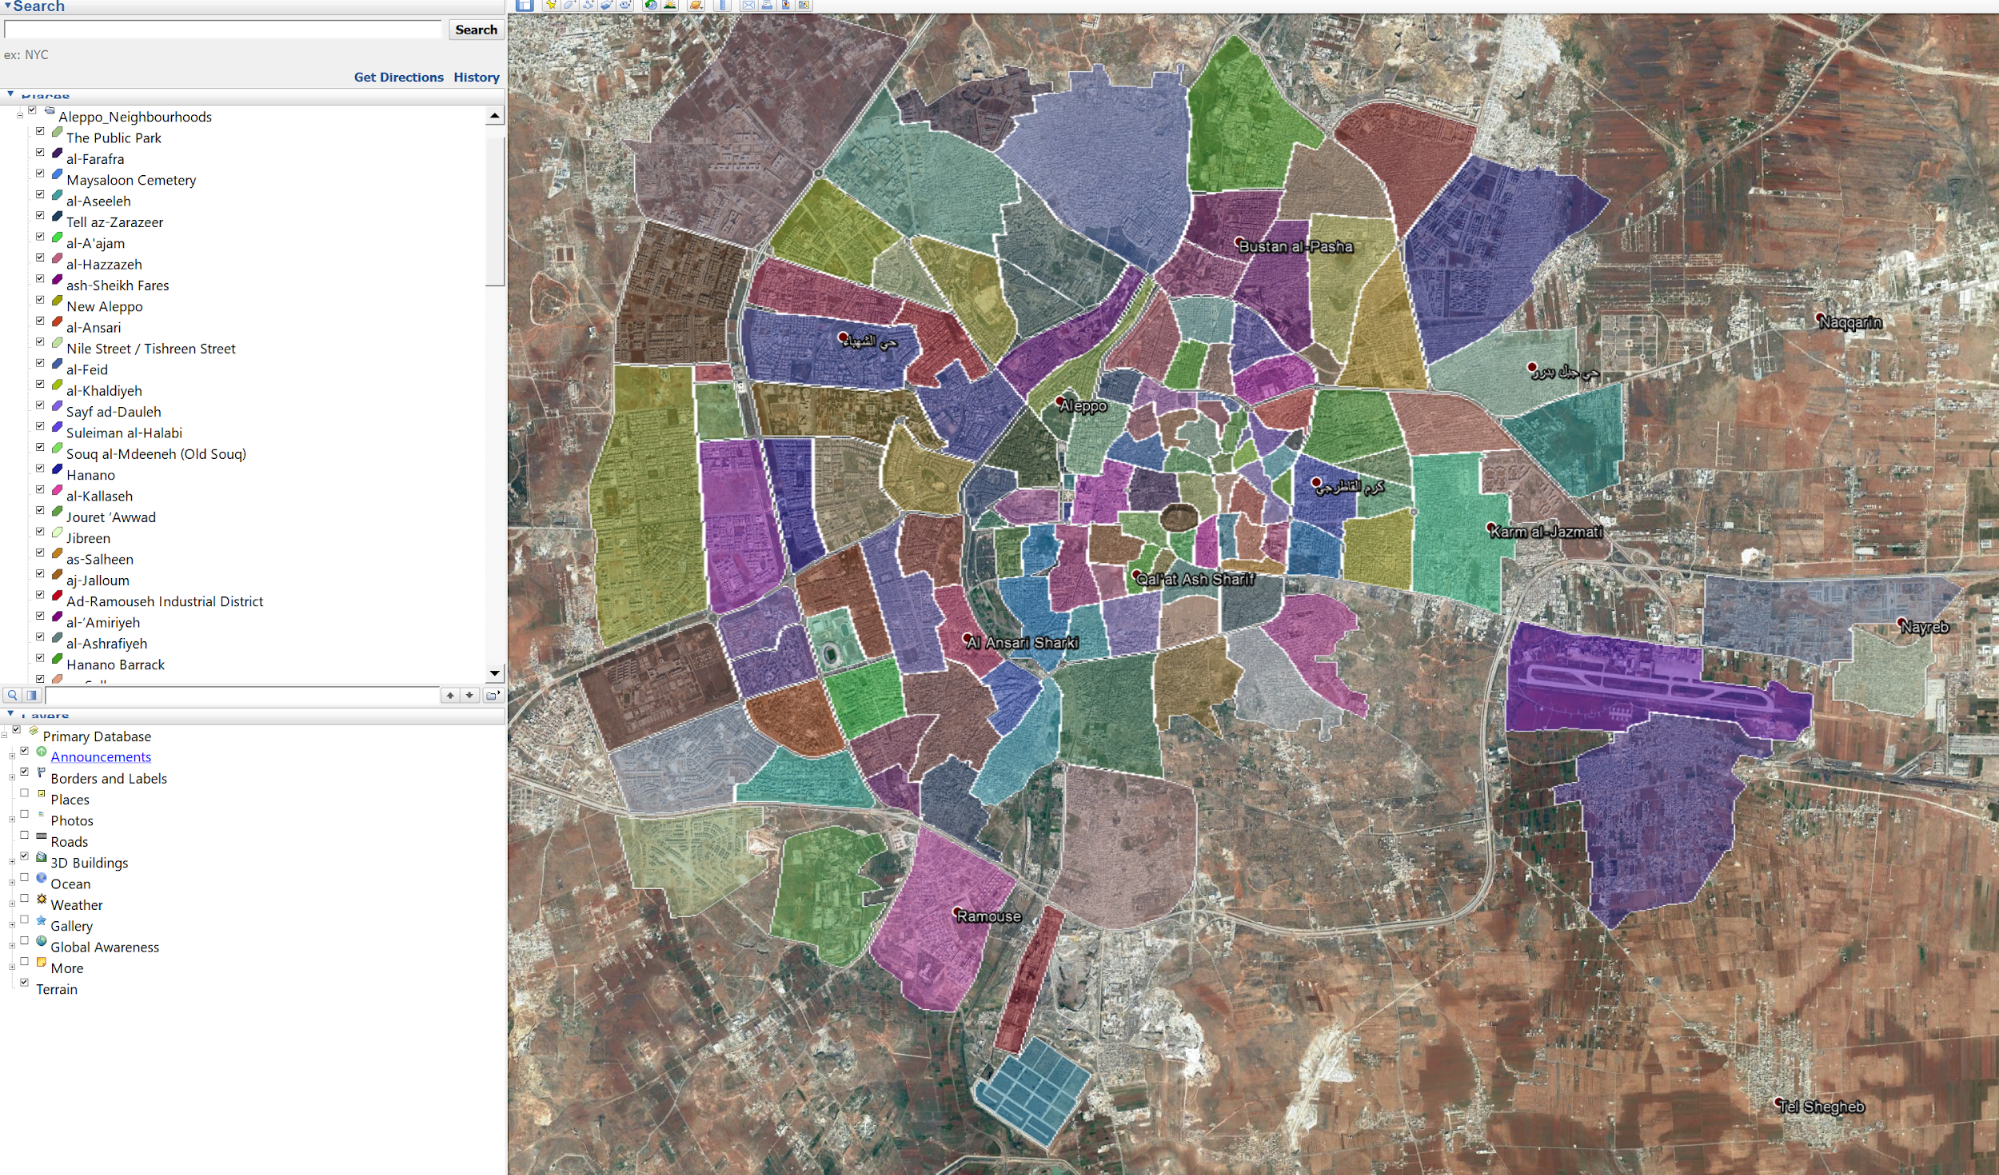 bellingcat - How to Scrape Interactive Geospatial Data - bellingcat